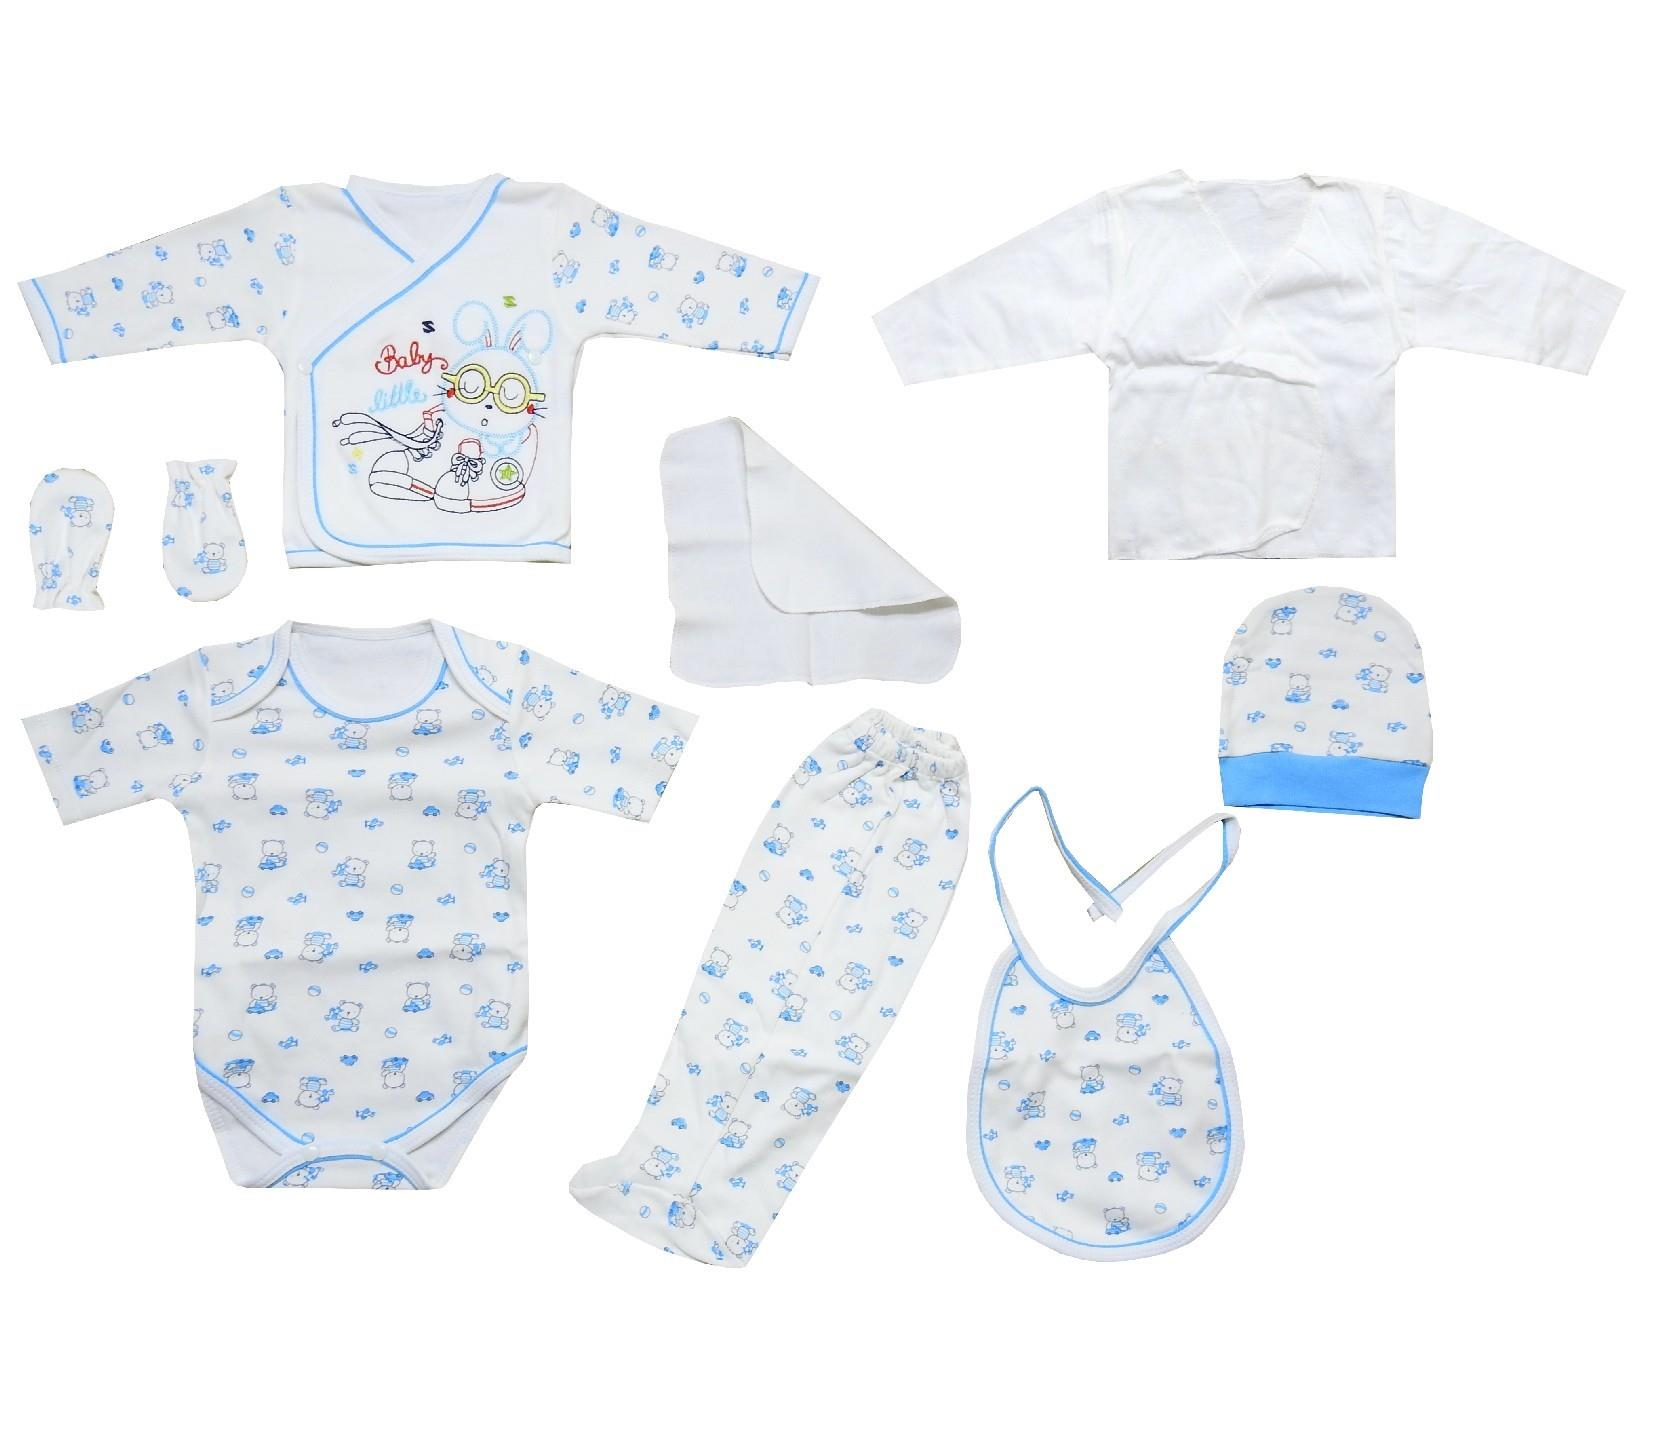 Wholesale rabbit print newborn set, 8 pieces in package